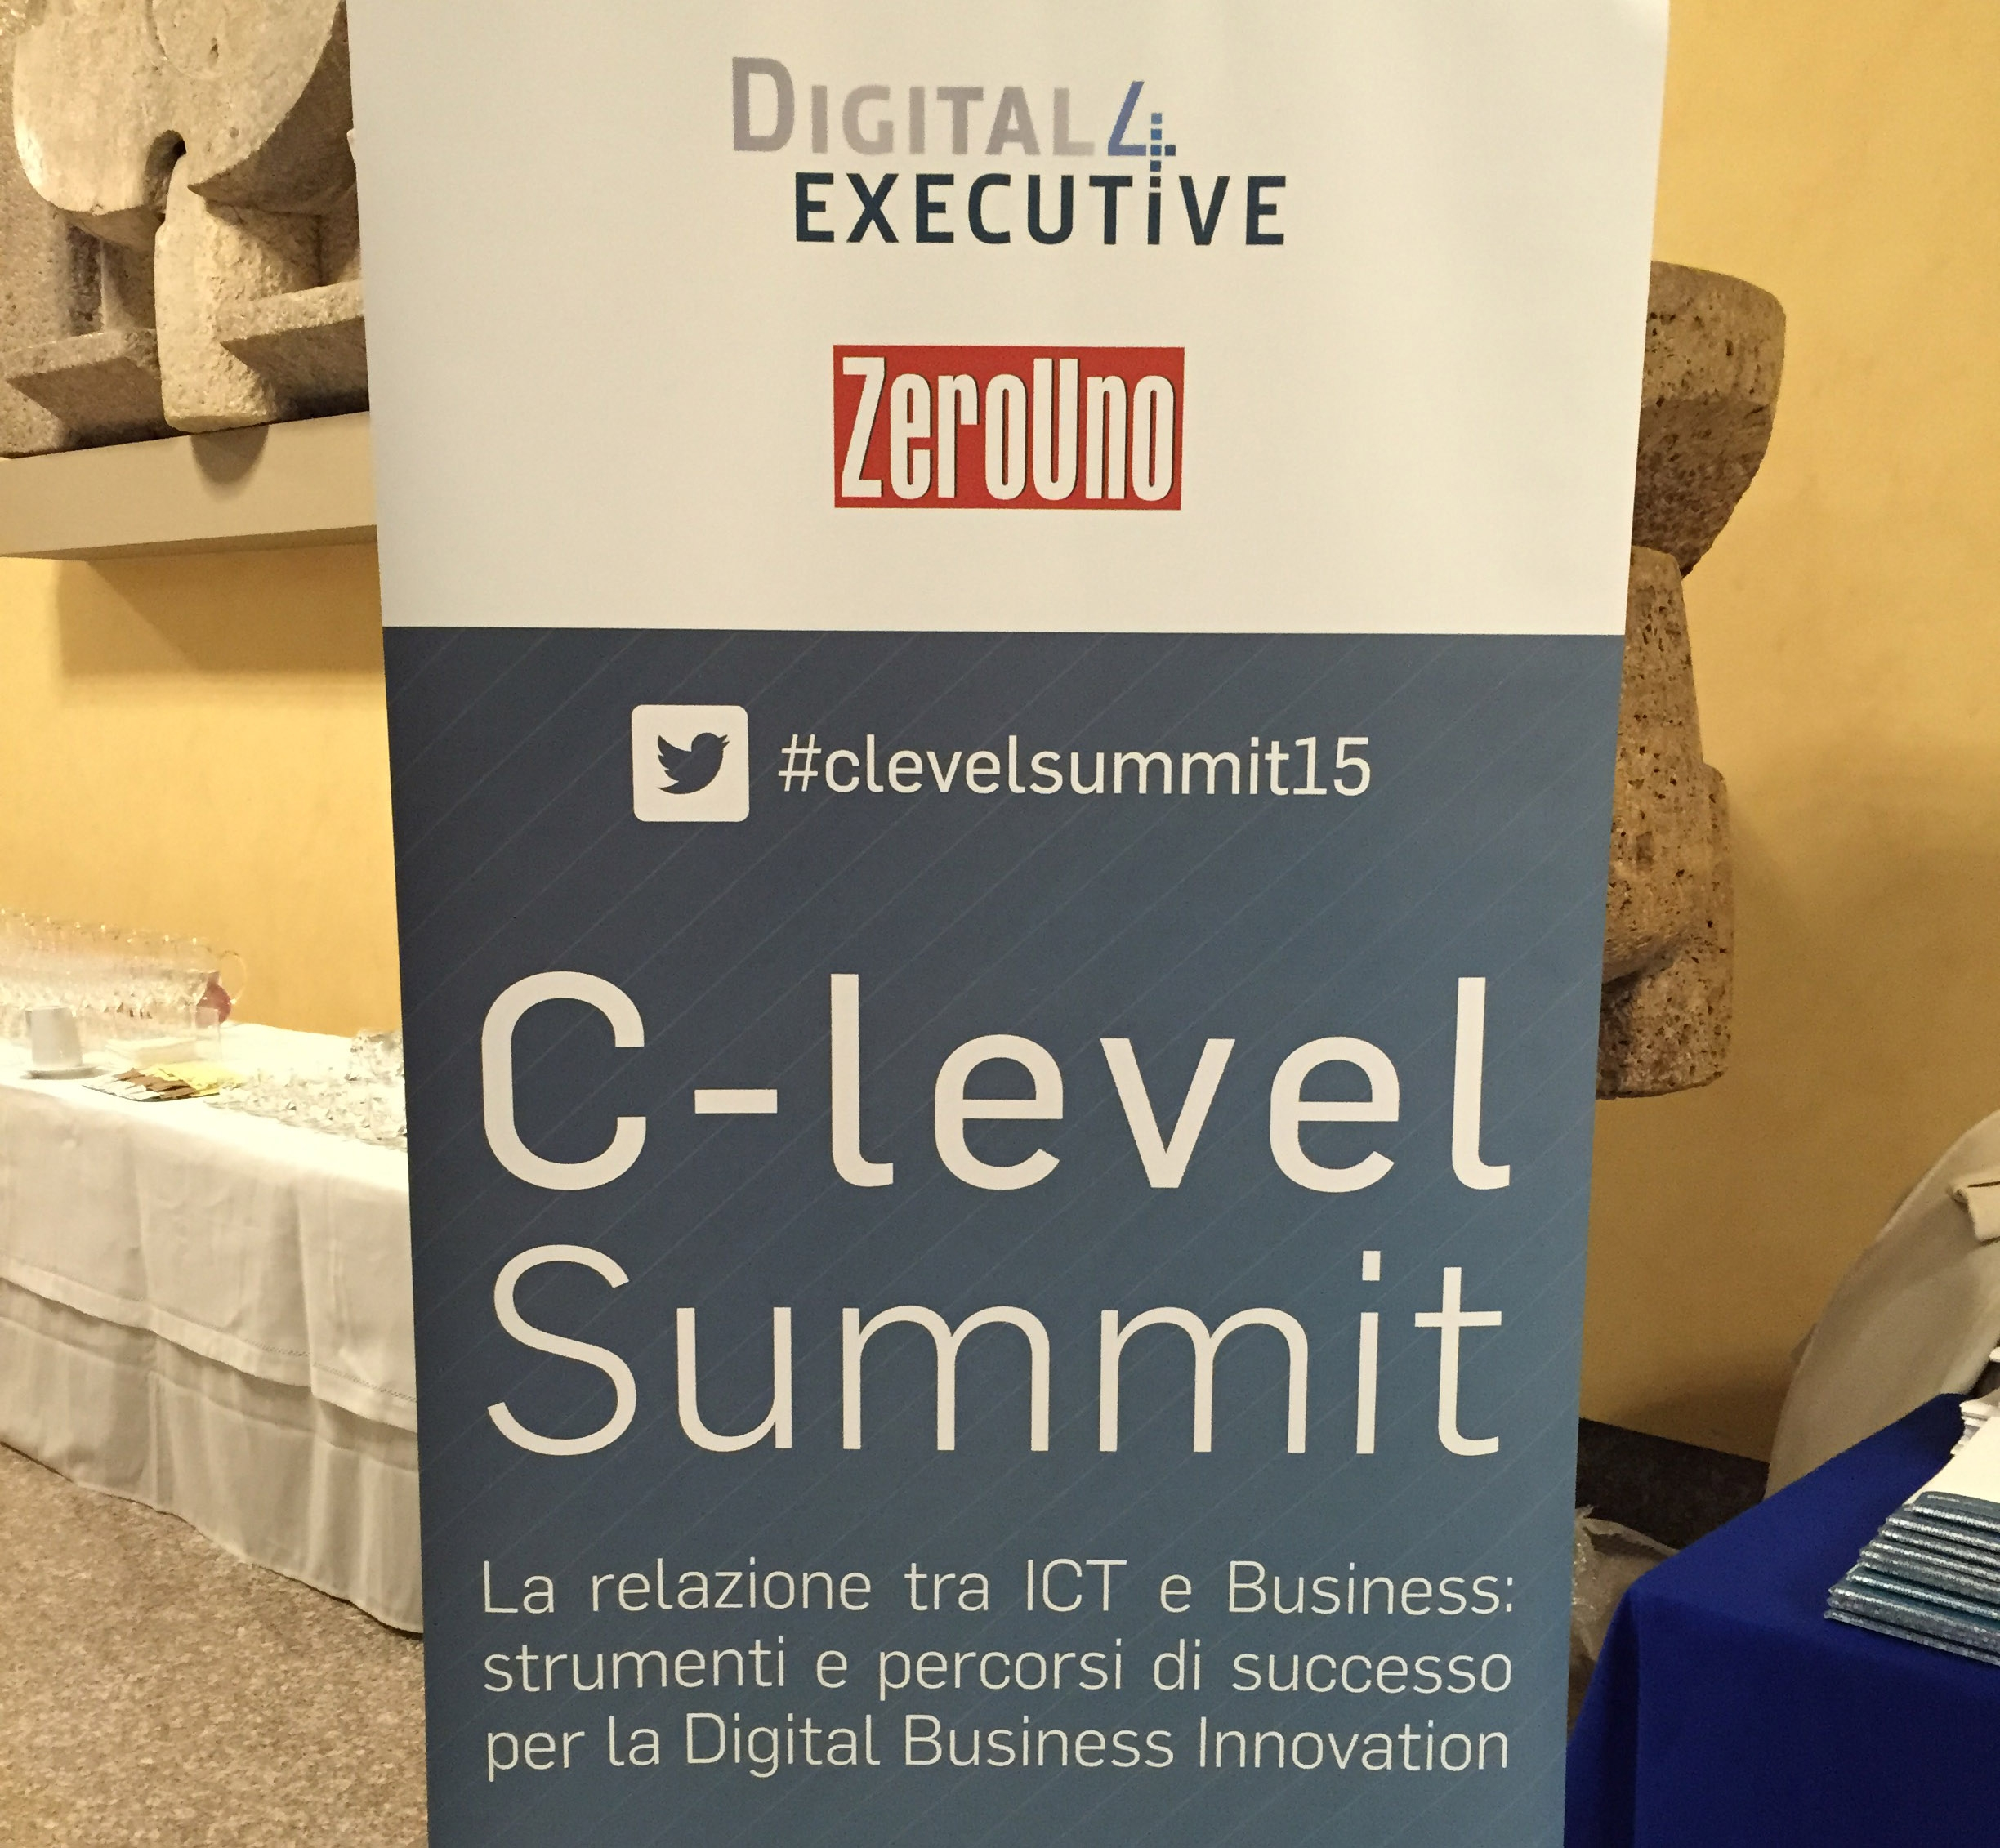 C-level summit digital360 digital4executive zerouno